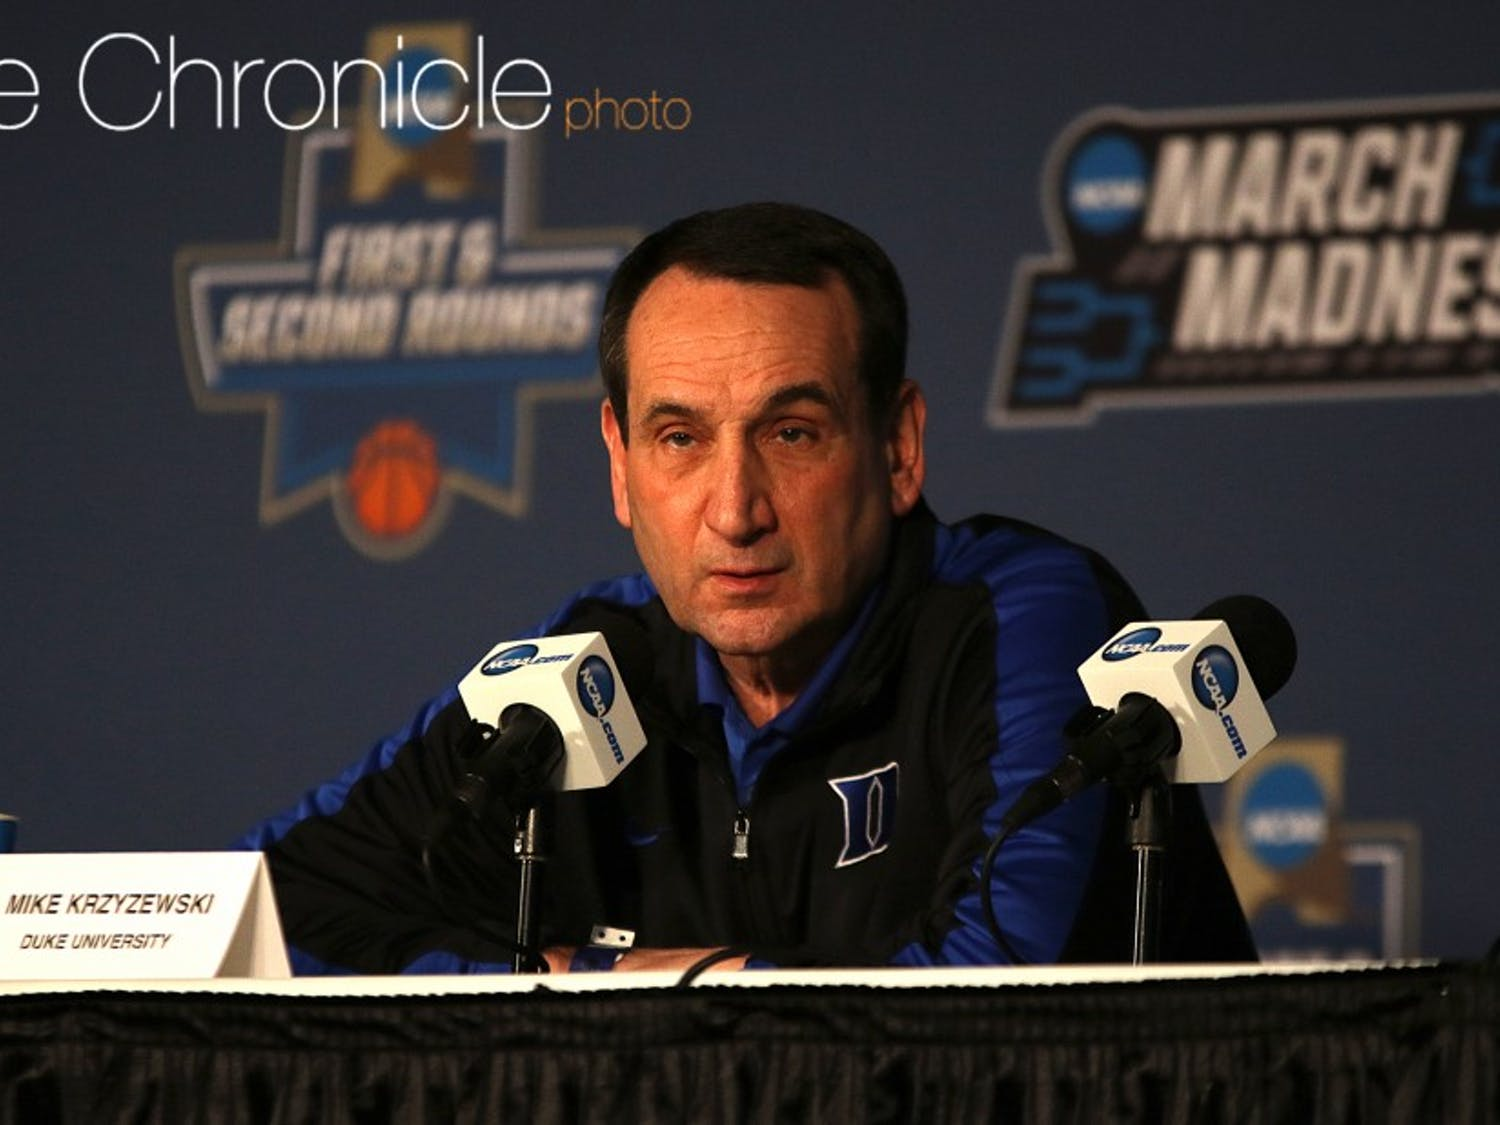 Head coach Mike Krzyzewski will have plenty of options to work with next season with a talented incoming class, especially if five-star center Marques Bolden commits to Duke.